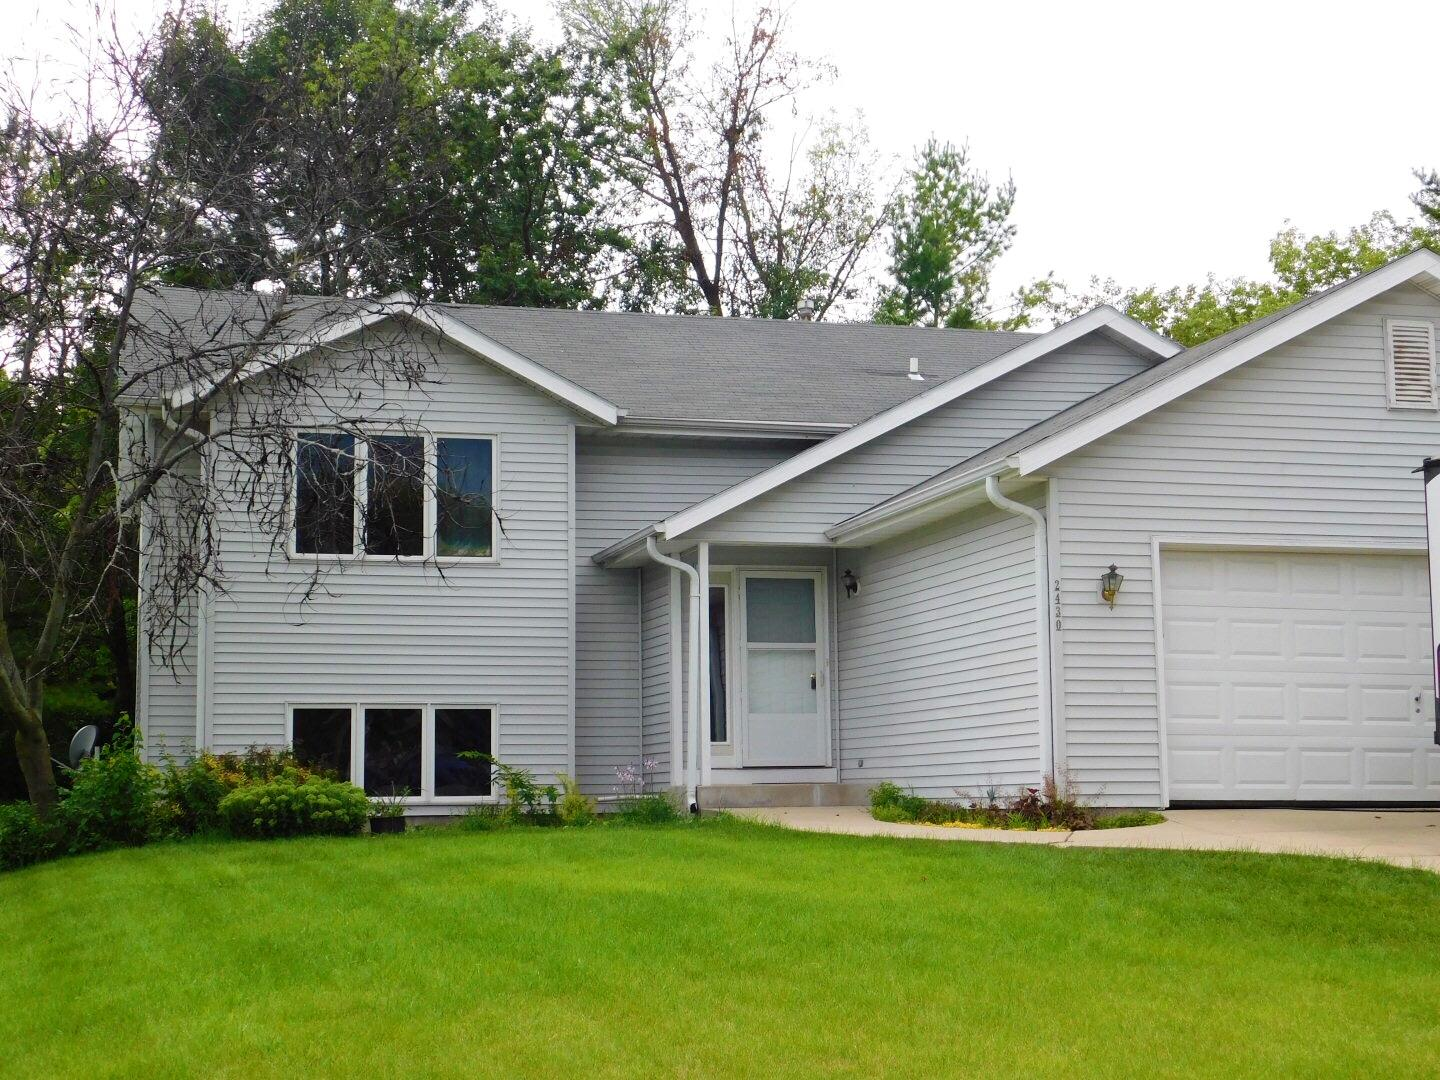 2430 Brentwood Dr, Waukesha, Wisconsin 53188, 4 Bedrooms Bedrooms, 8 Rooms Rooms,3 BathroomsBathrooms,Single-Family,For Sale,Brentwood Dr,1616884